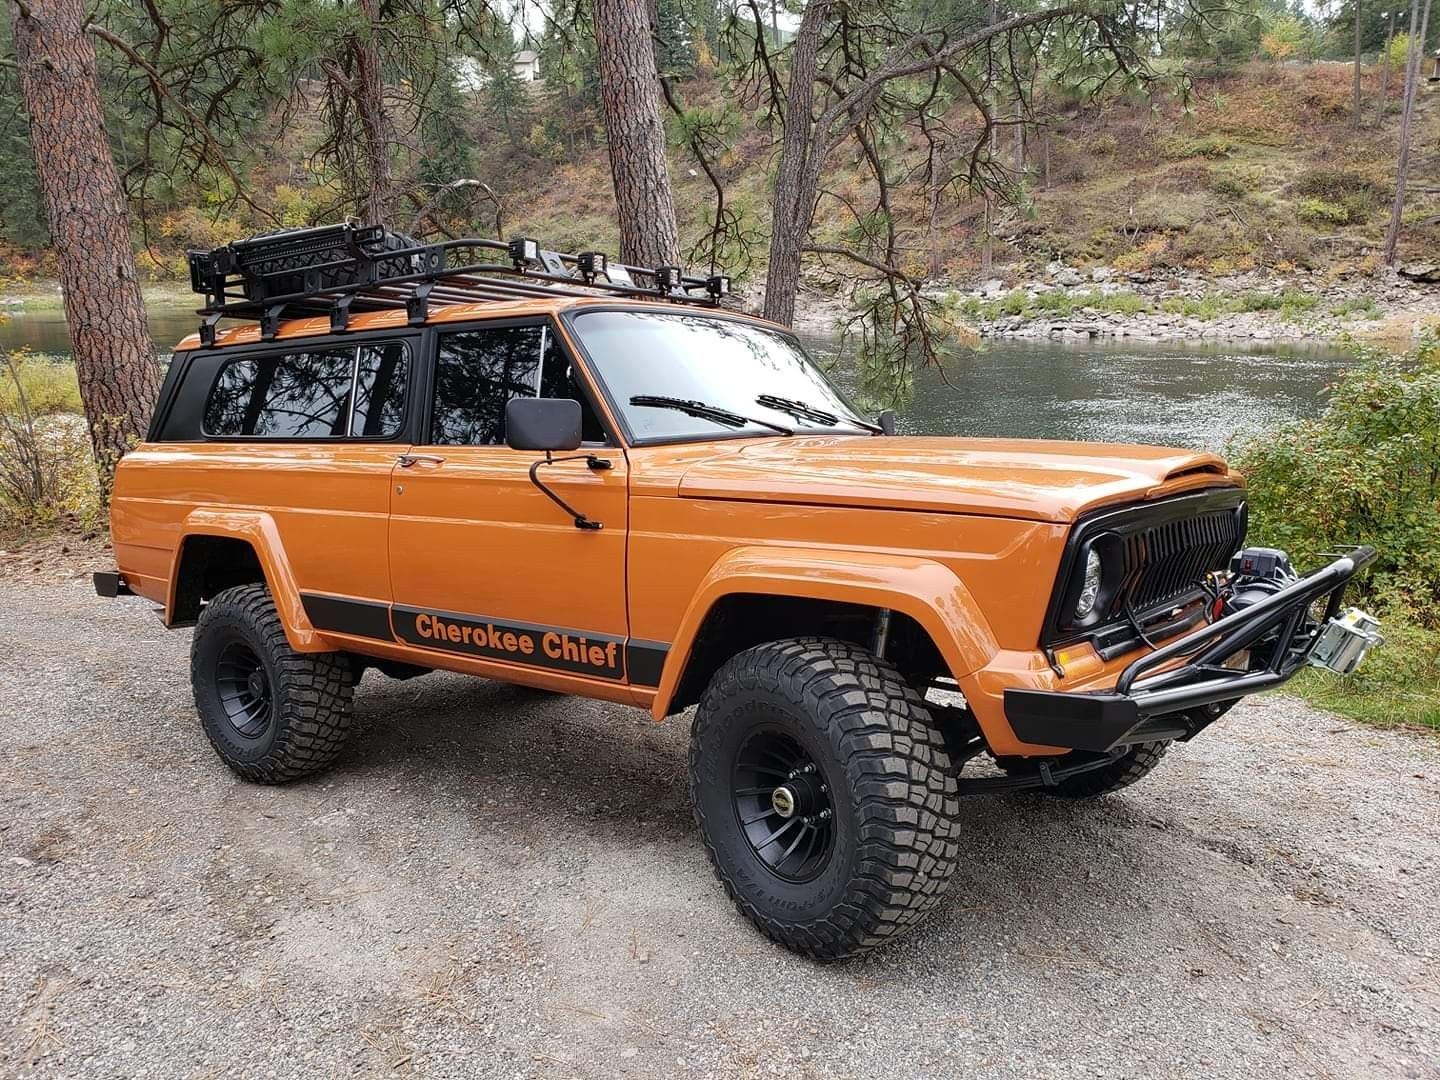 Pin By Ricky L On Jeep Mostly Old Jeep Cherokee Chief Jeep Cherokee